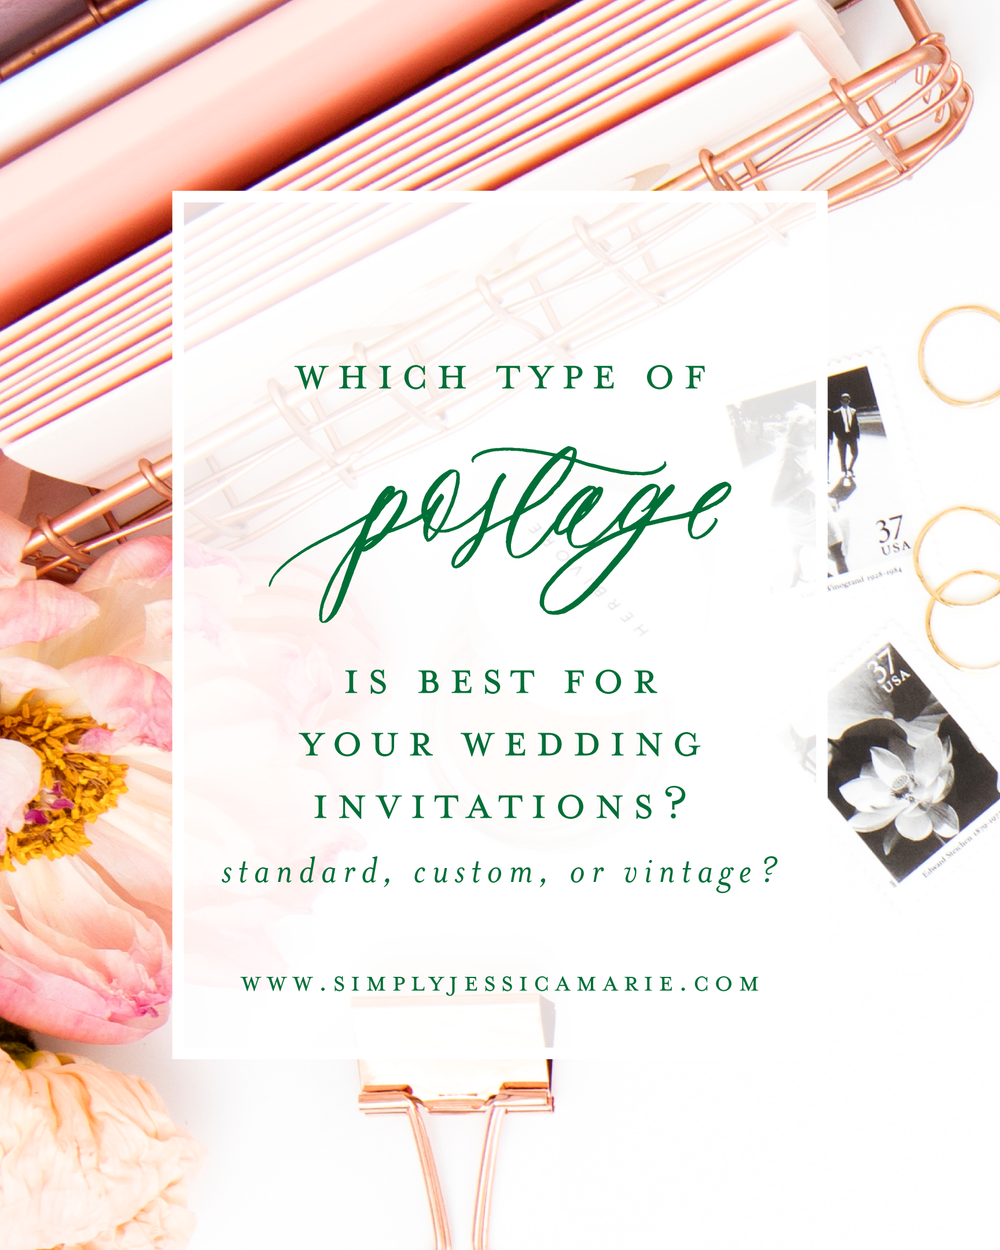 Comparing Wedding Postage Options | Standard USPS Postage, Custom Postage, and Vintage Postage Stamps - which style is the best fit for your wedding invitations? A free resource guide to my top 3 favorite sources for wedding postage! | Simply Jessica Marie